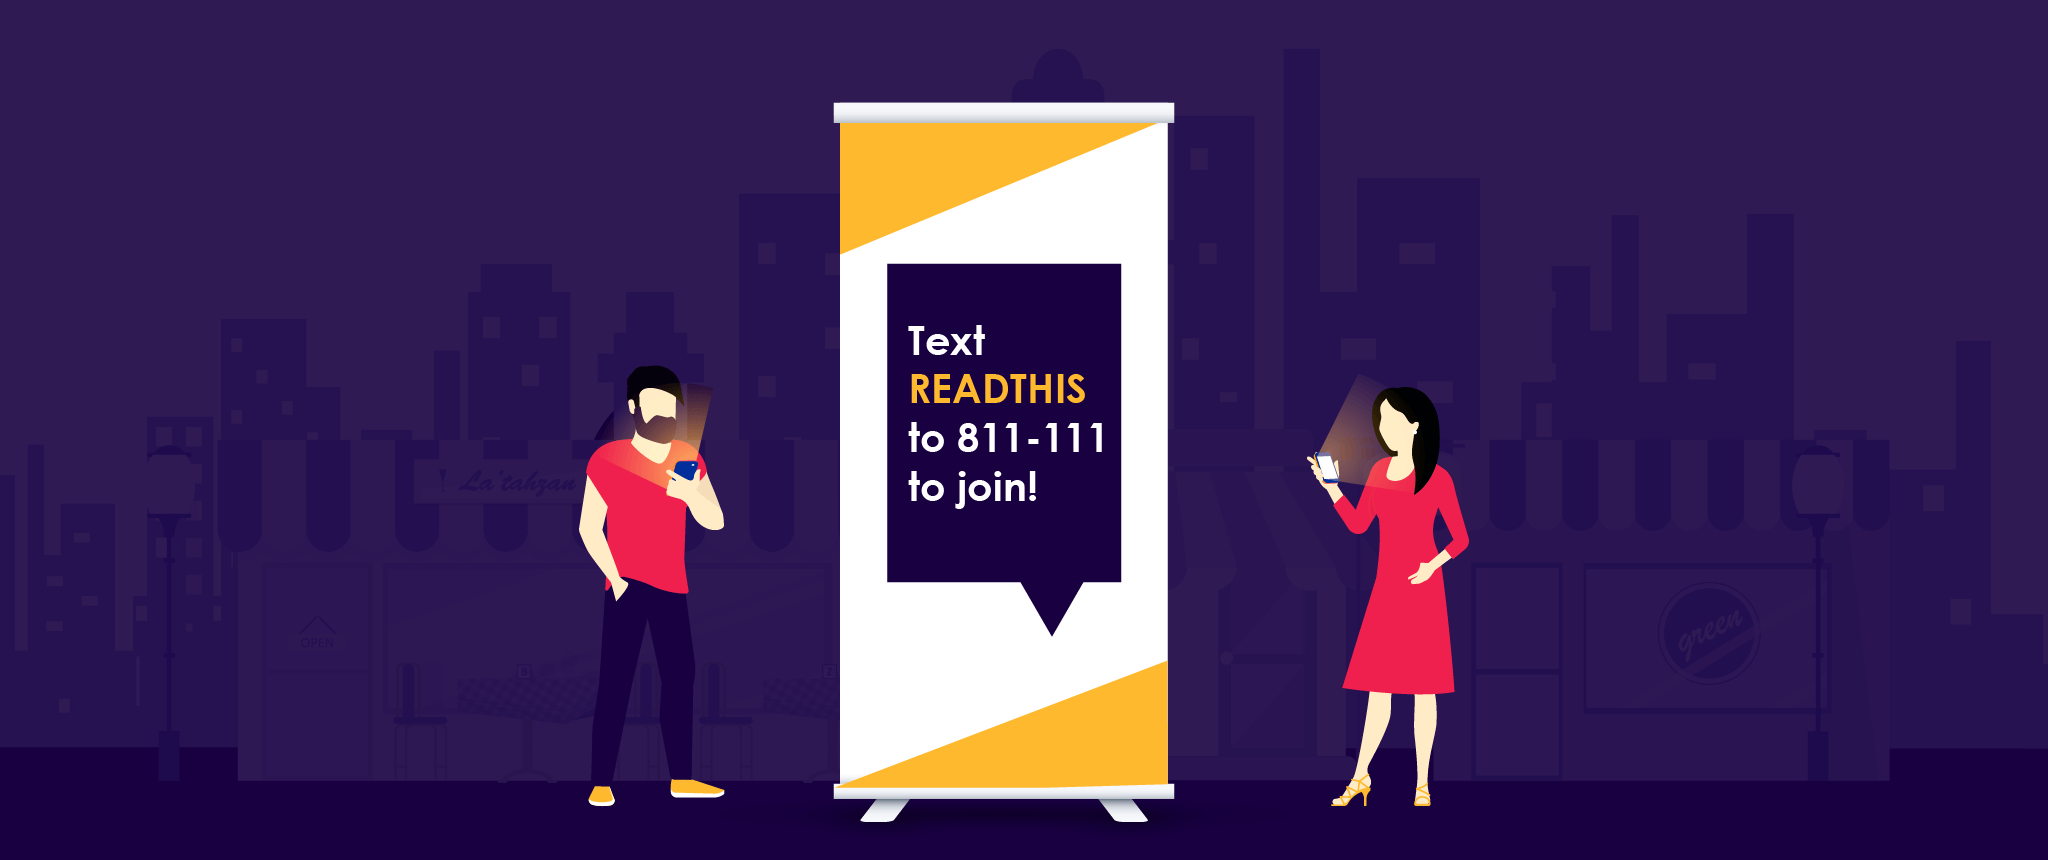 SMS Short Code: What It Is and How to Use It to Market Your App